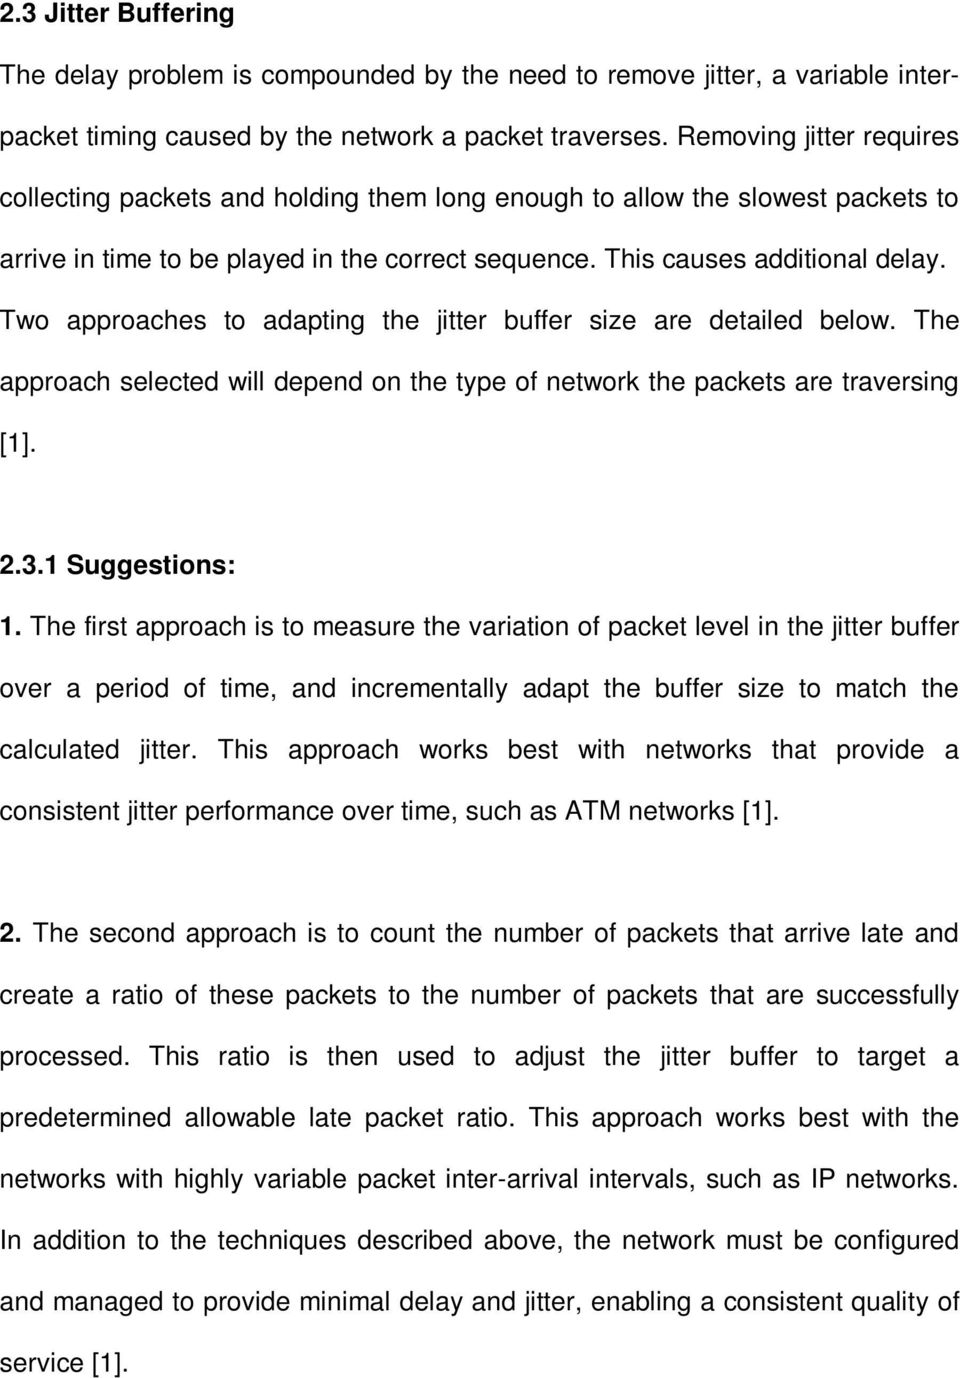 Two approaches to adapting the jitter buffer size are detailed below. The approach selected will depend on the type of network the packets are traversing [1]. 2.3.1 Suggestions: 1.